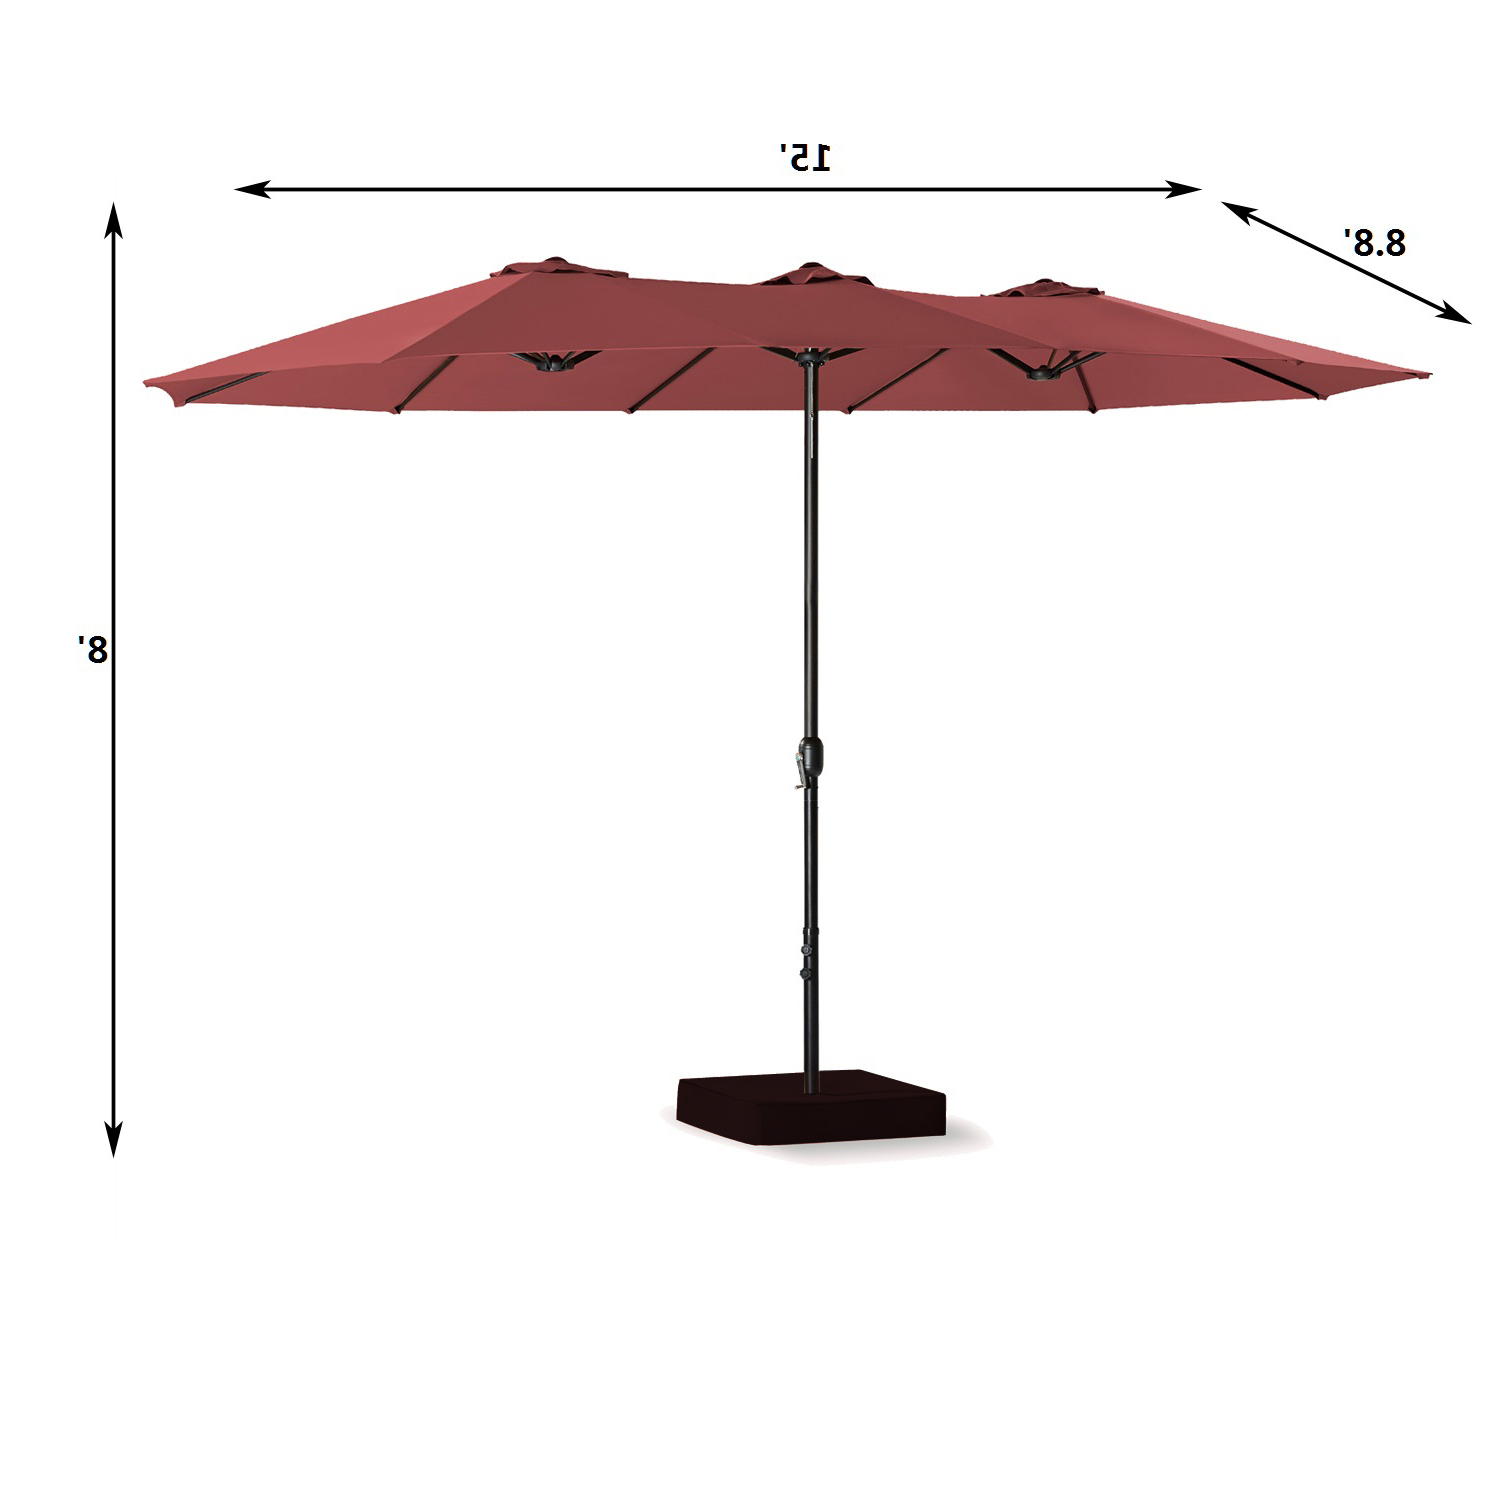 [%15 Ft Double Sided Outdoor Market Umbrella 12 Ribs, Crank System, 100%  Polyester, Base Included (Red) With Most Up To Date Zadie Twin Rectangular Market Umbrellas|Zadie Twin Rectangular Market Umbrellas For Recent 15 Ft Double Sided Outdoor Market Umbrella 12 Ribs, Crank System, 100%  Polyester, Base Included (Red)|2019 Zadie Twin Rectangular Market Umbrellas For 15 Ft Double Sided Outdoor Market Umbrella 12 Ribs, Crank System, 100%  Polyester, Base Included (Red)|Most Current 15 Ft Double Sided Outdoor Market Umbrella 12 Ribs, Crank System, 100%  Polyester, Base Included (Red) With Regard To Zadie Twin Rectangular Market Umbrellas%] (View 1 of 20)